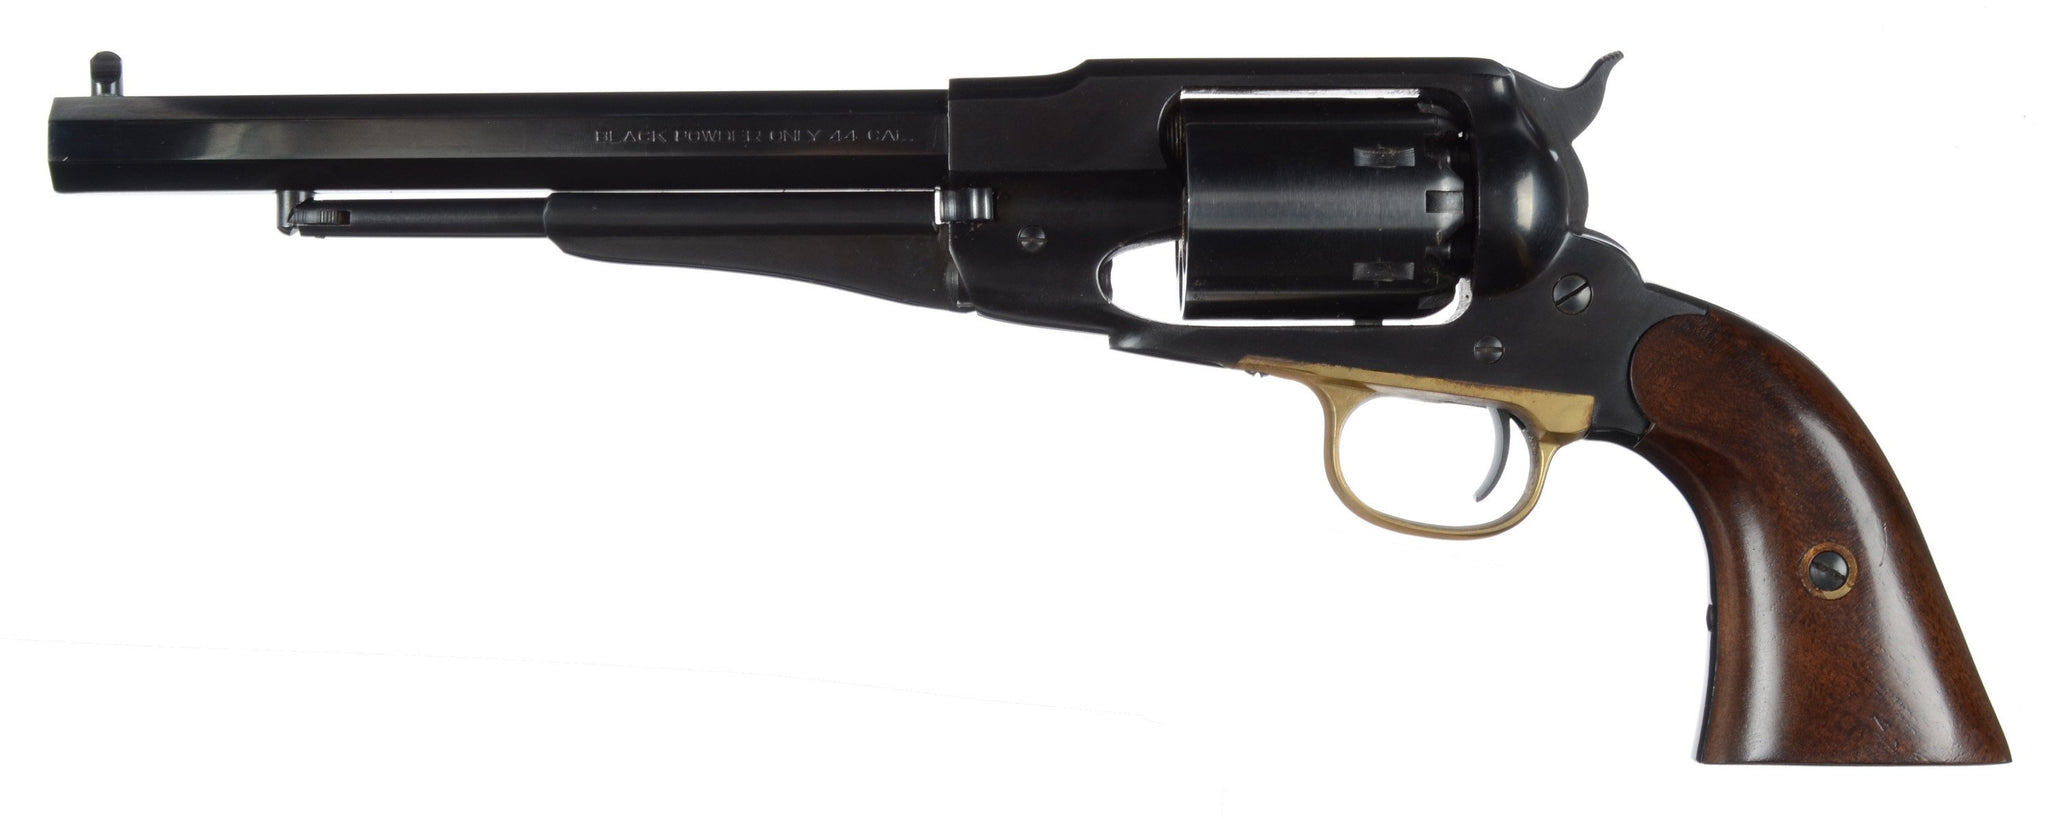 F. LLIPIETTA 1858 REMINGTON REVOLVER